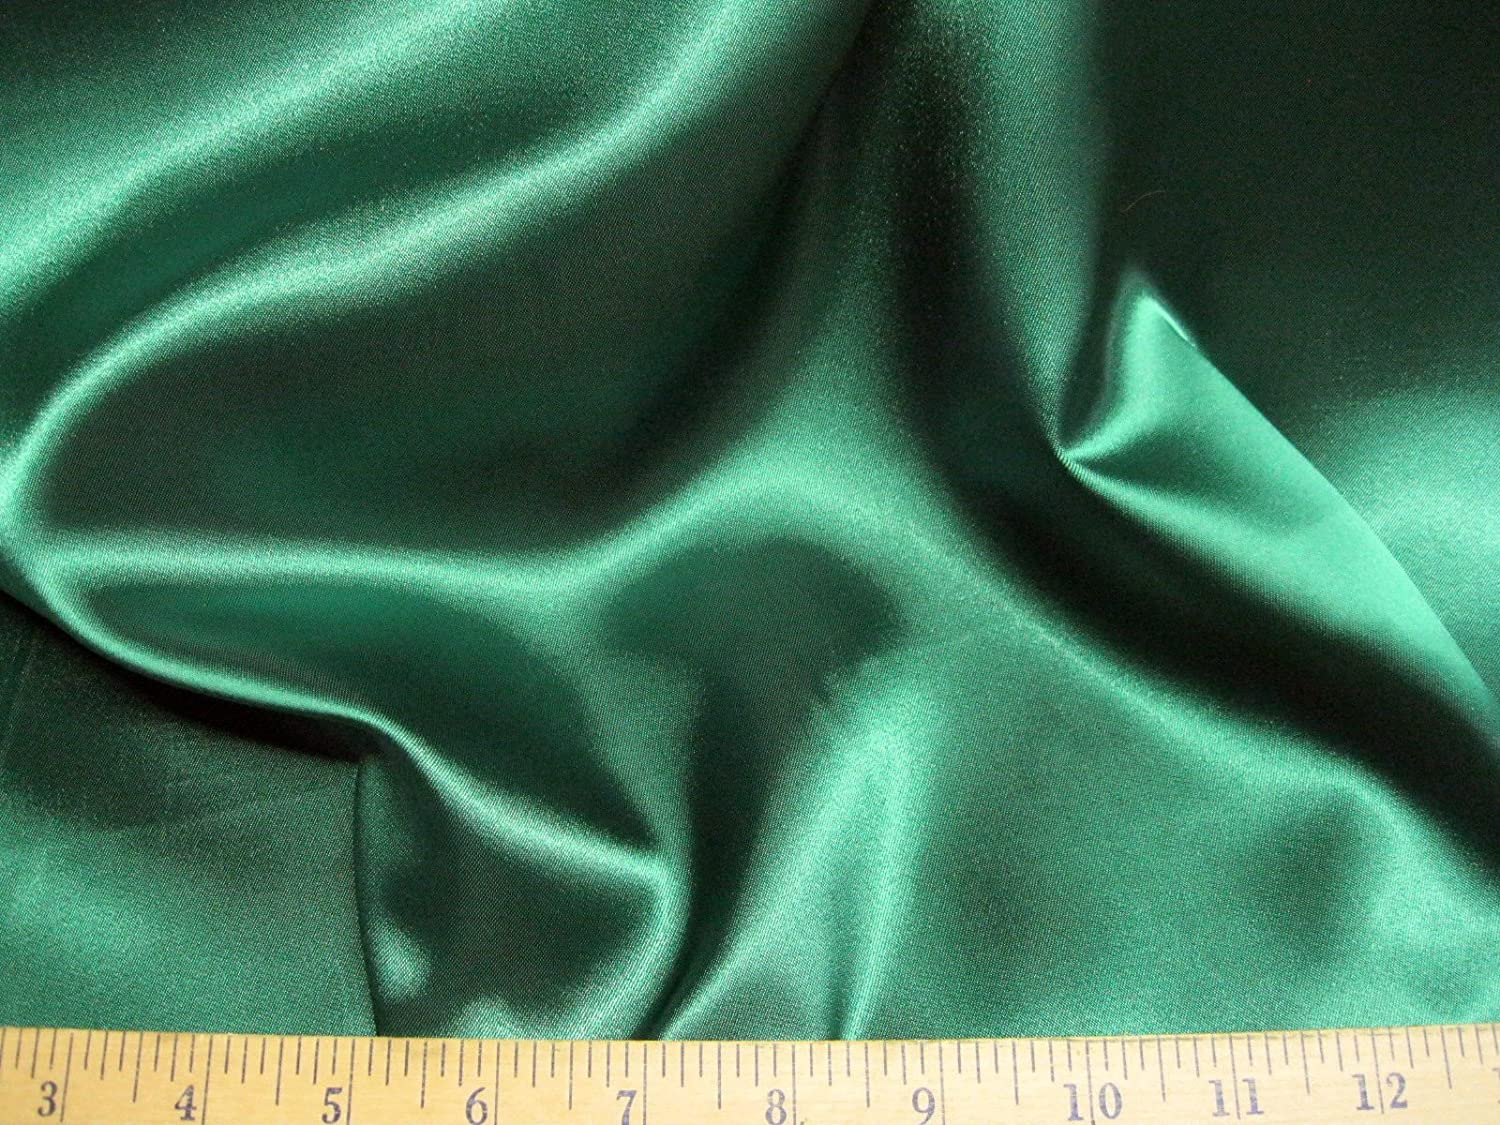 Solid emerald turquoise fabric by the yard teal fabric carousel - Solid Emerald Turquoise Fabric By The Yard Teal Fabric Carousel 22